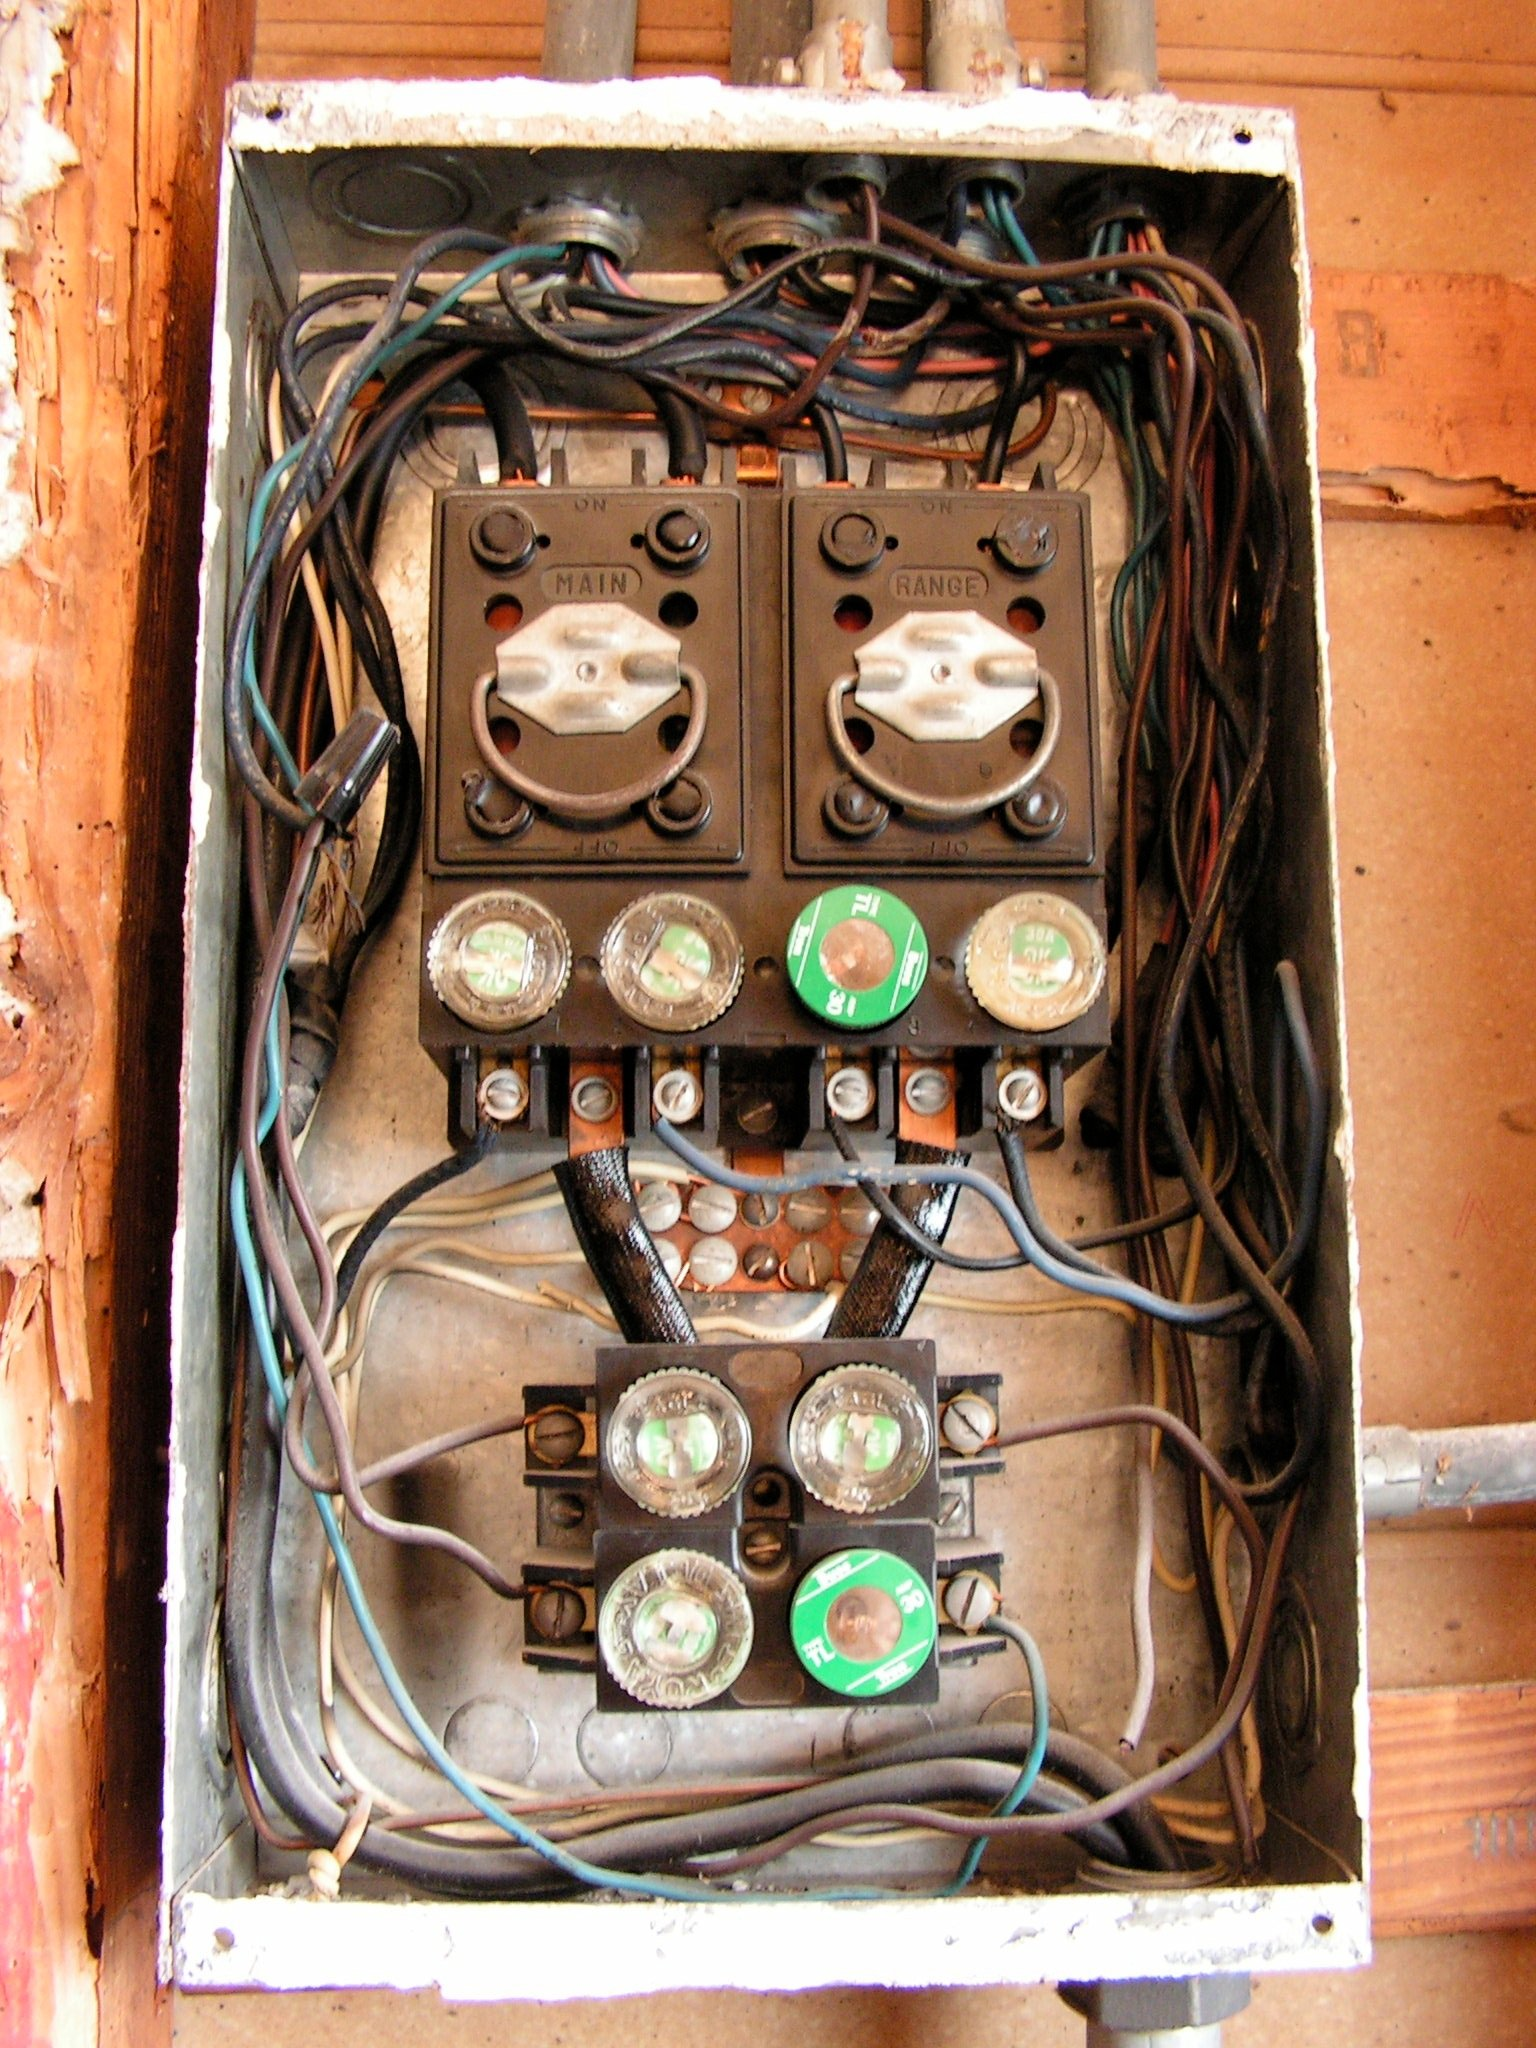 i need advice from an electrician who has tons of Old Electrical Fuse Panels 2012 07 20 204319 panel